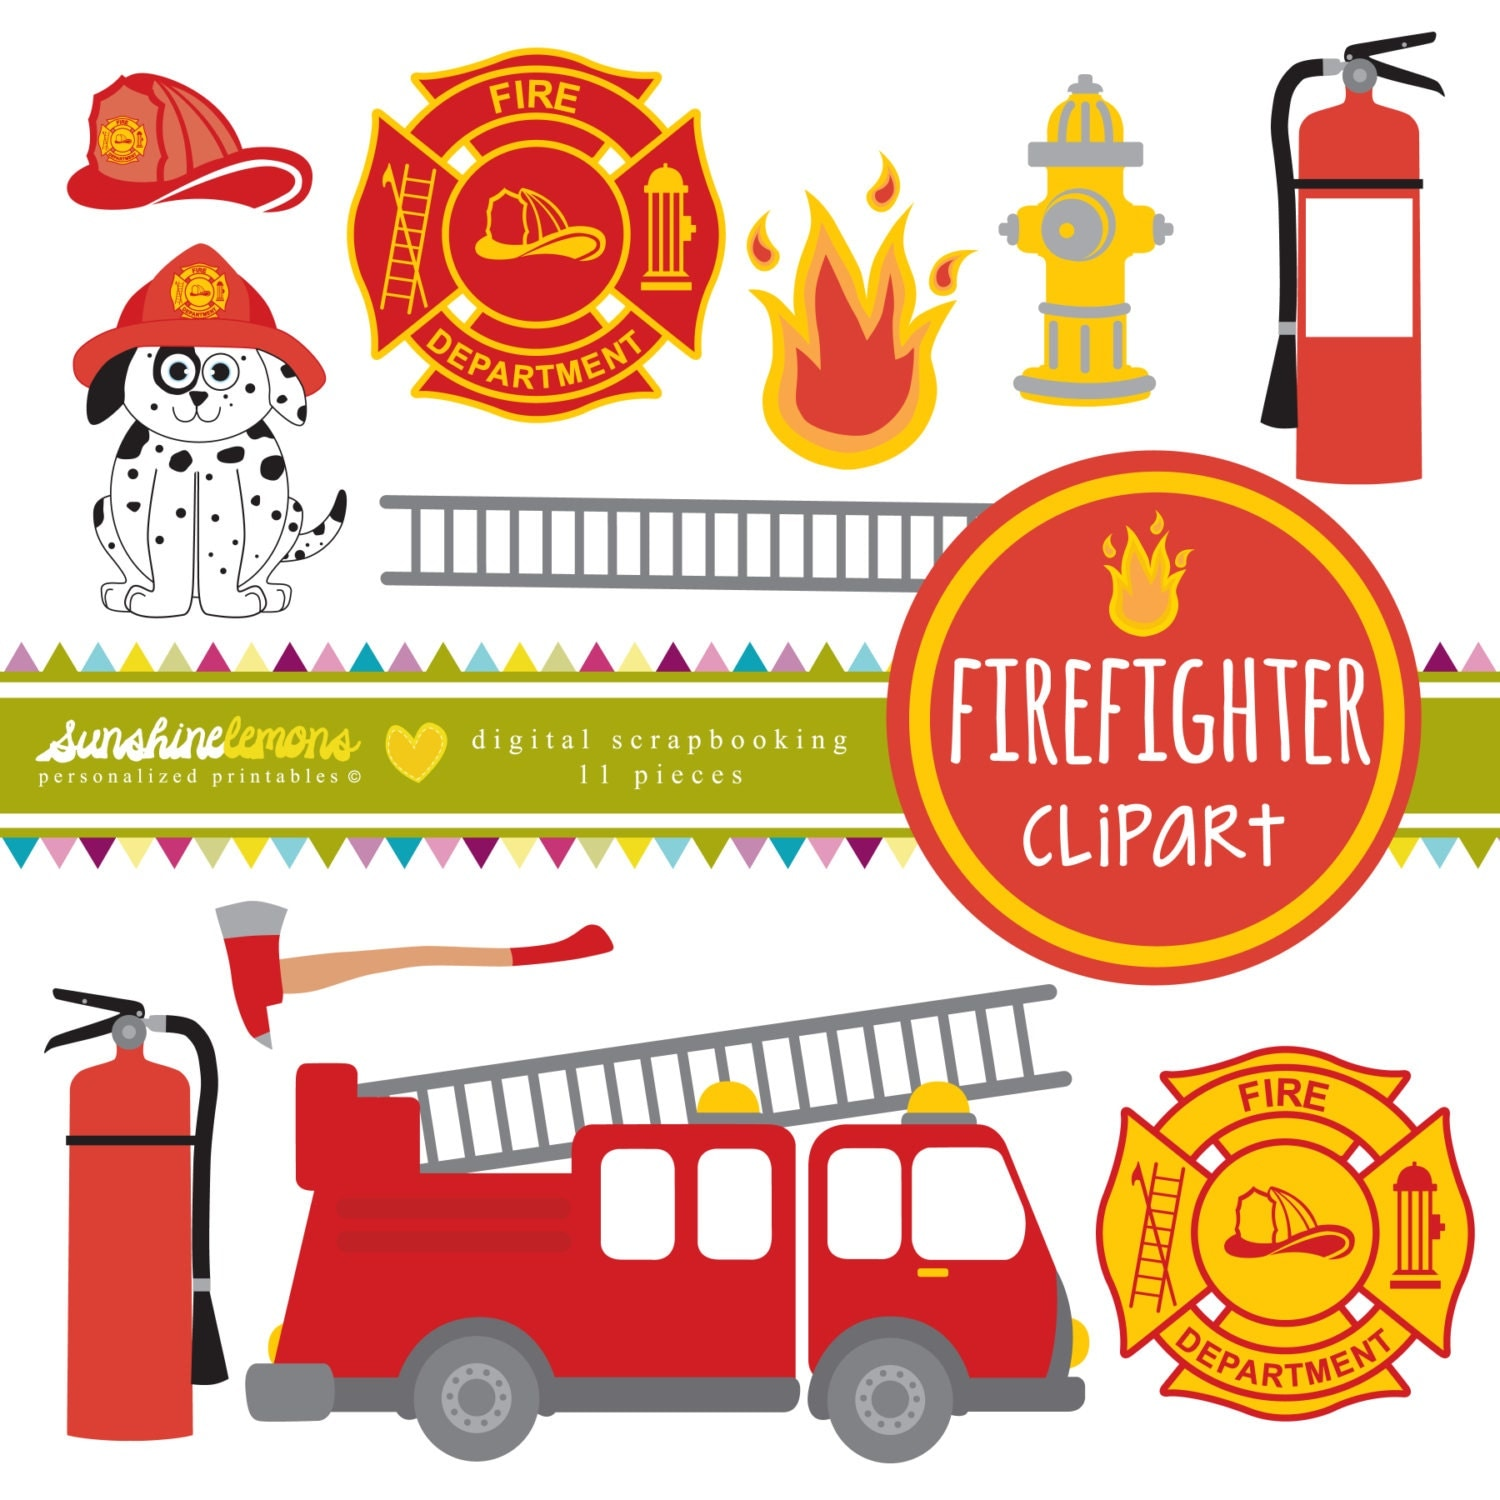 Firehouse Dalmatian Clipart Firefighter clipart fire